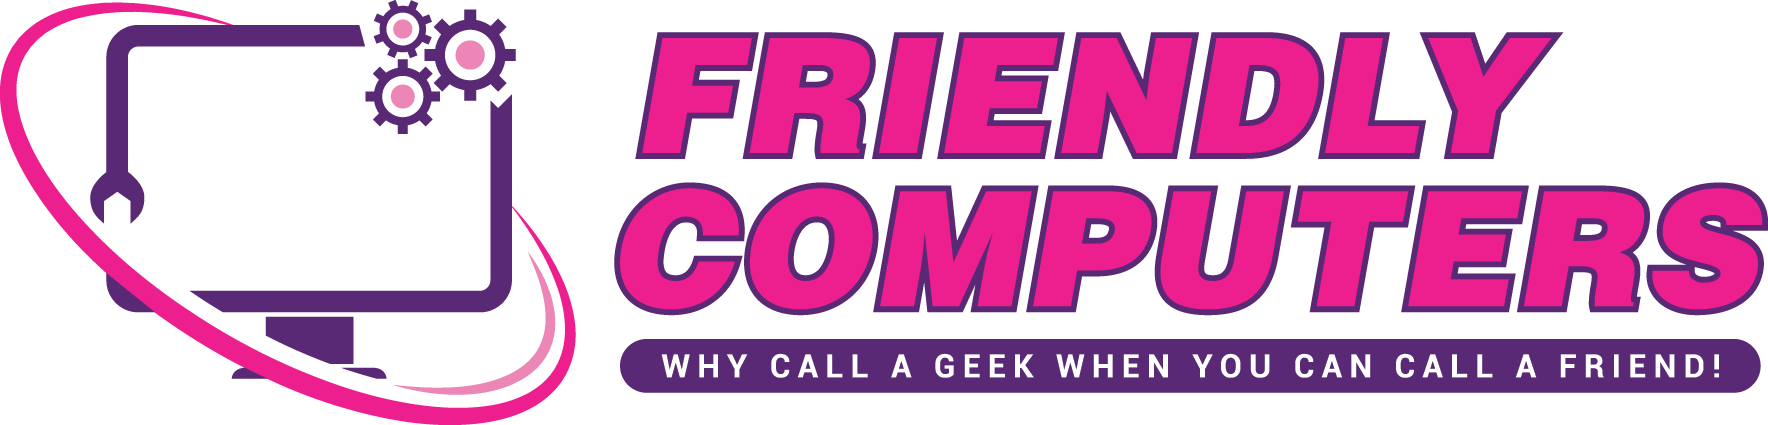 Friendly Computers Spokane Logo